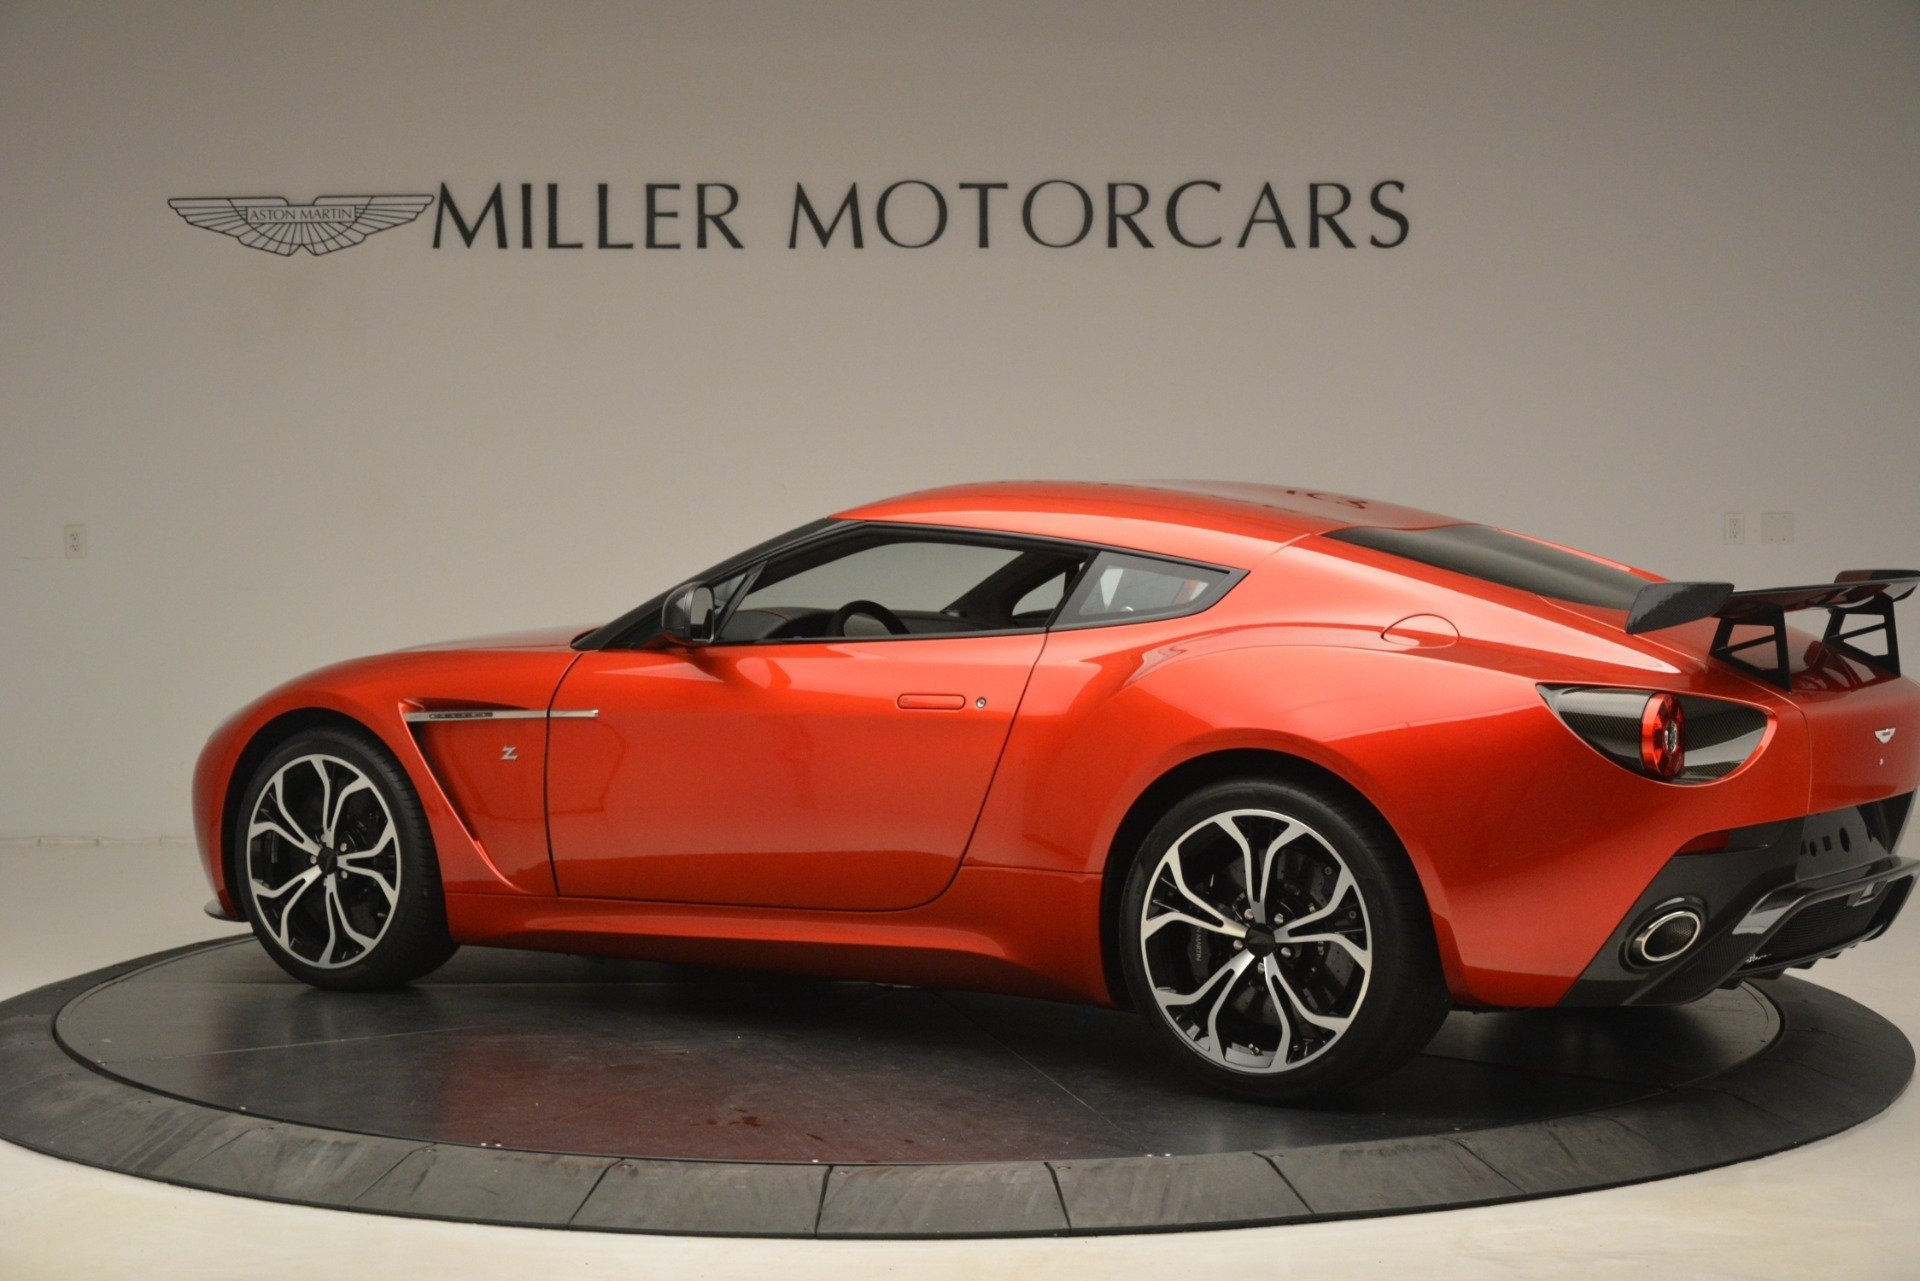 Pre Owned 2013 Aston Martin V12 Zagato Coupe For Sale 655 900 Mclaren Greenwich Stock 7936c